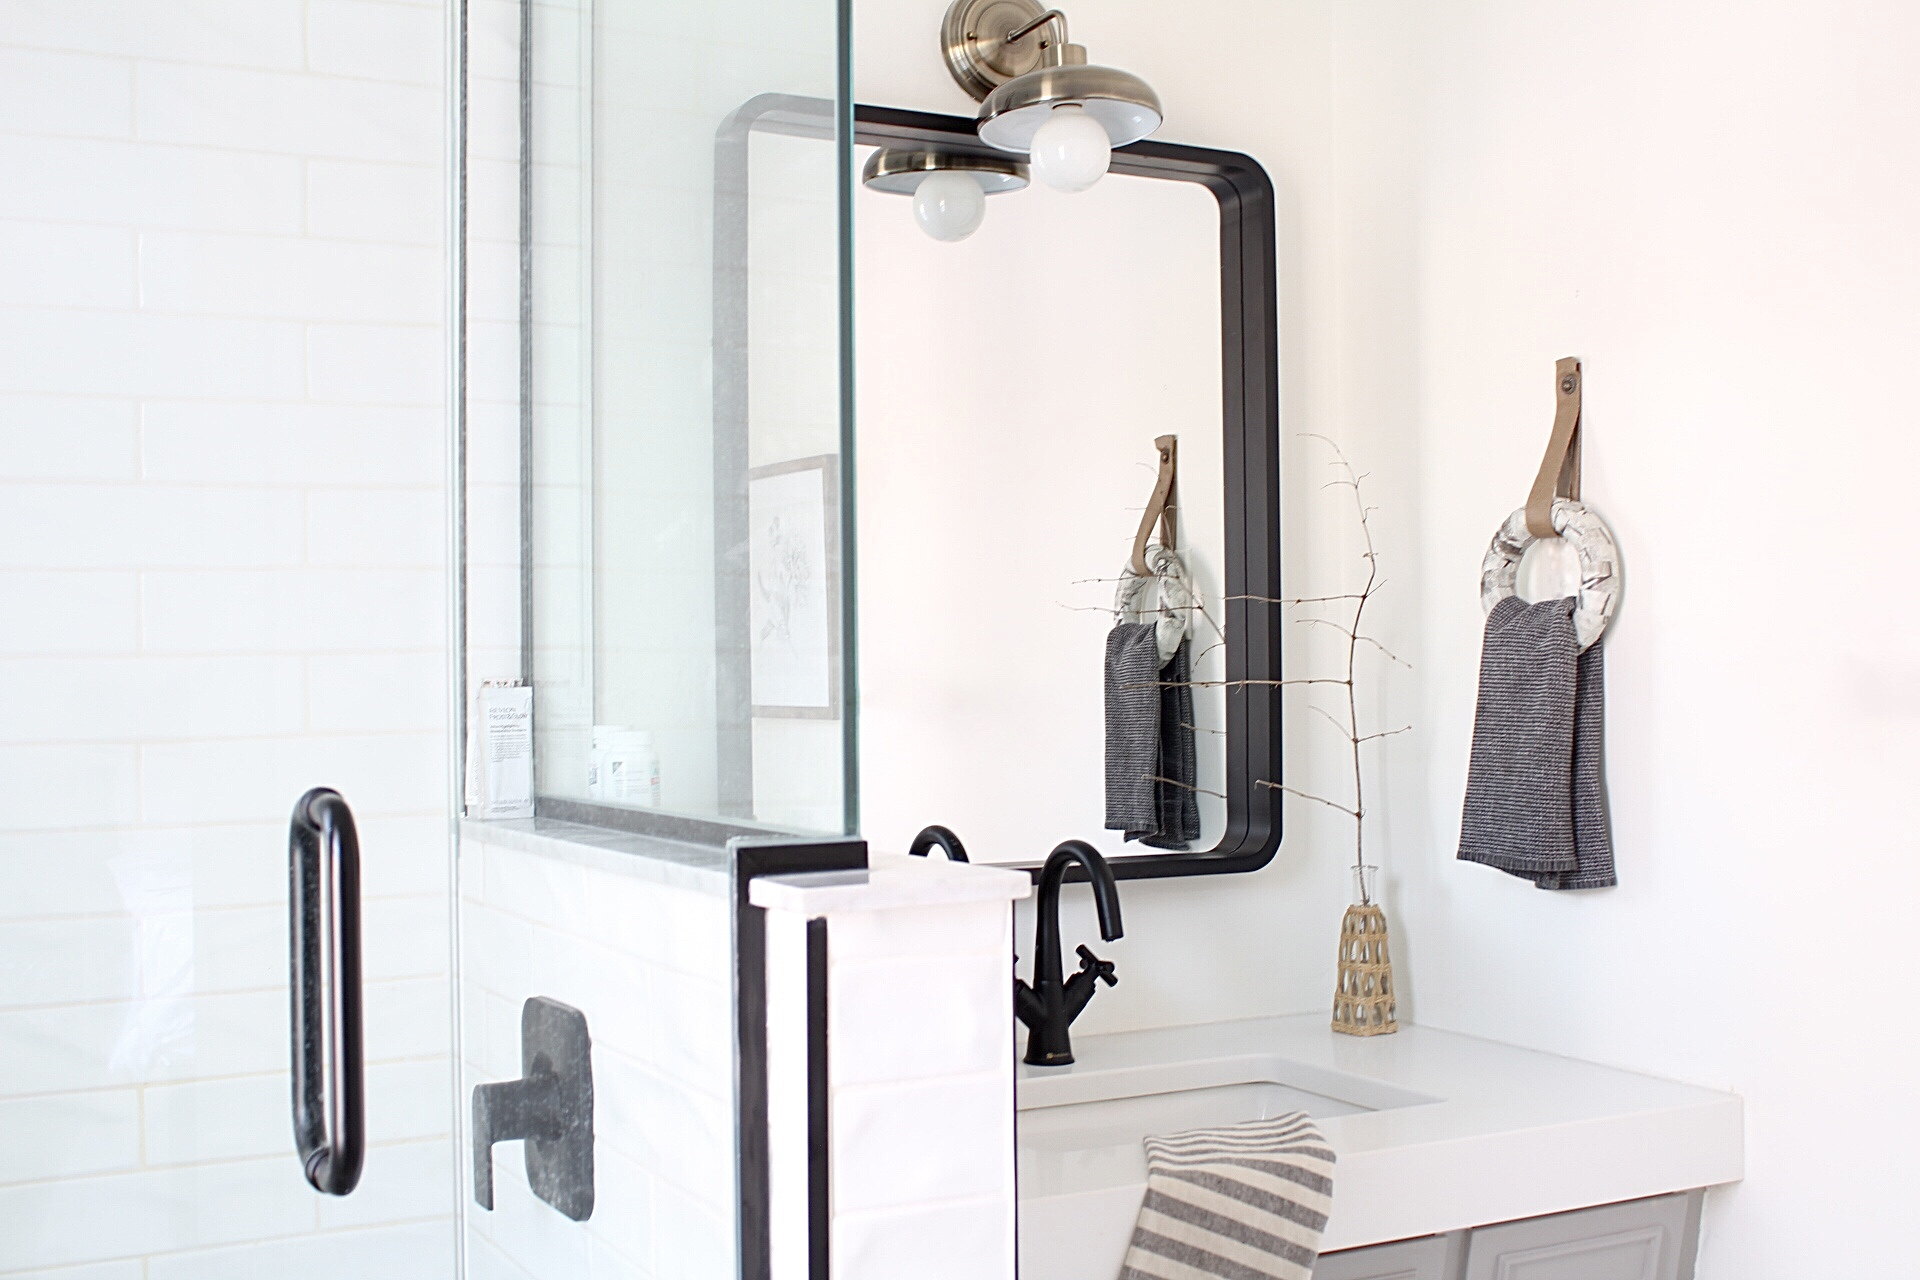 Bathroom Renovation with a DIY Towel Ring